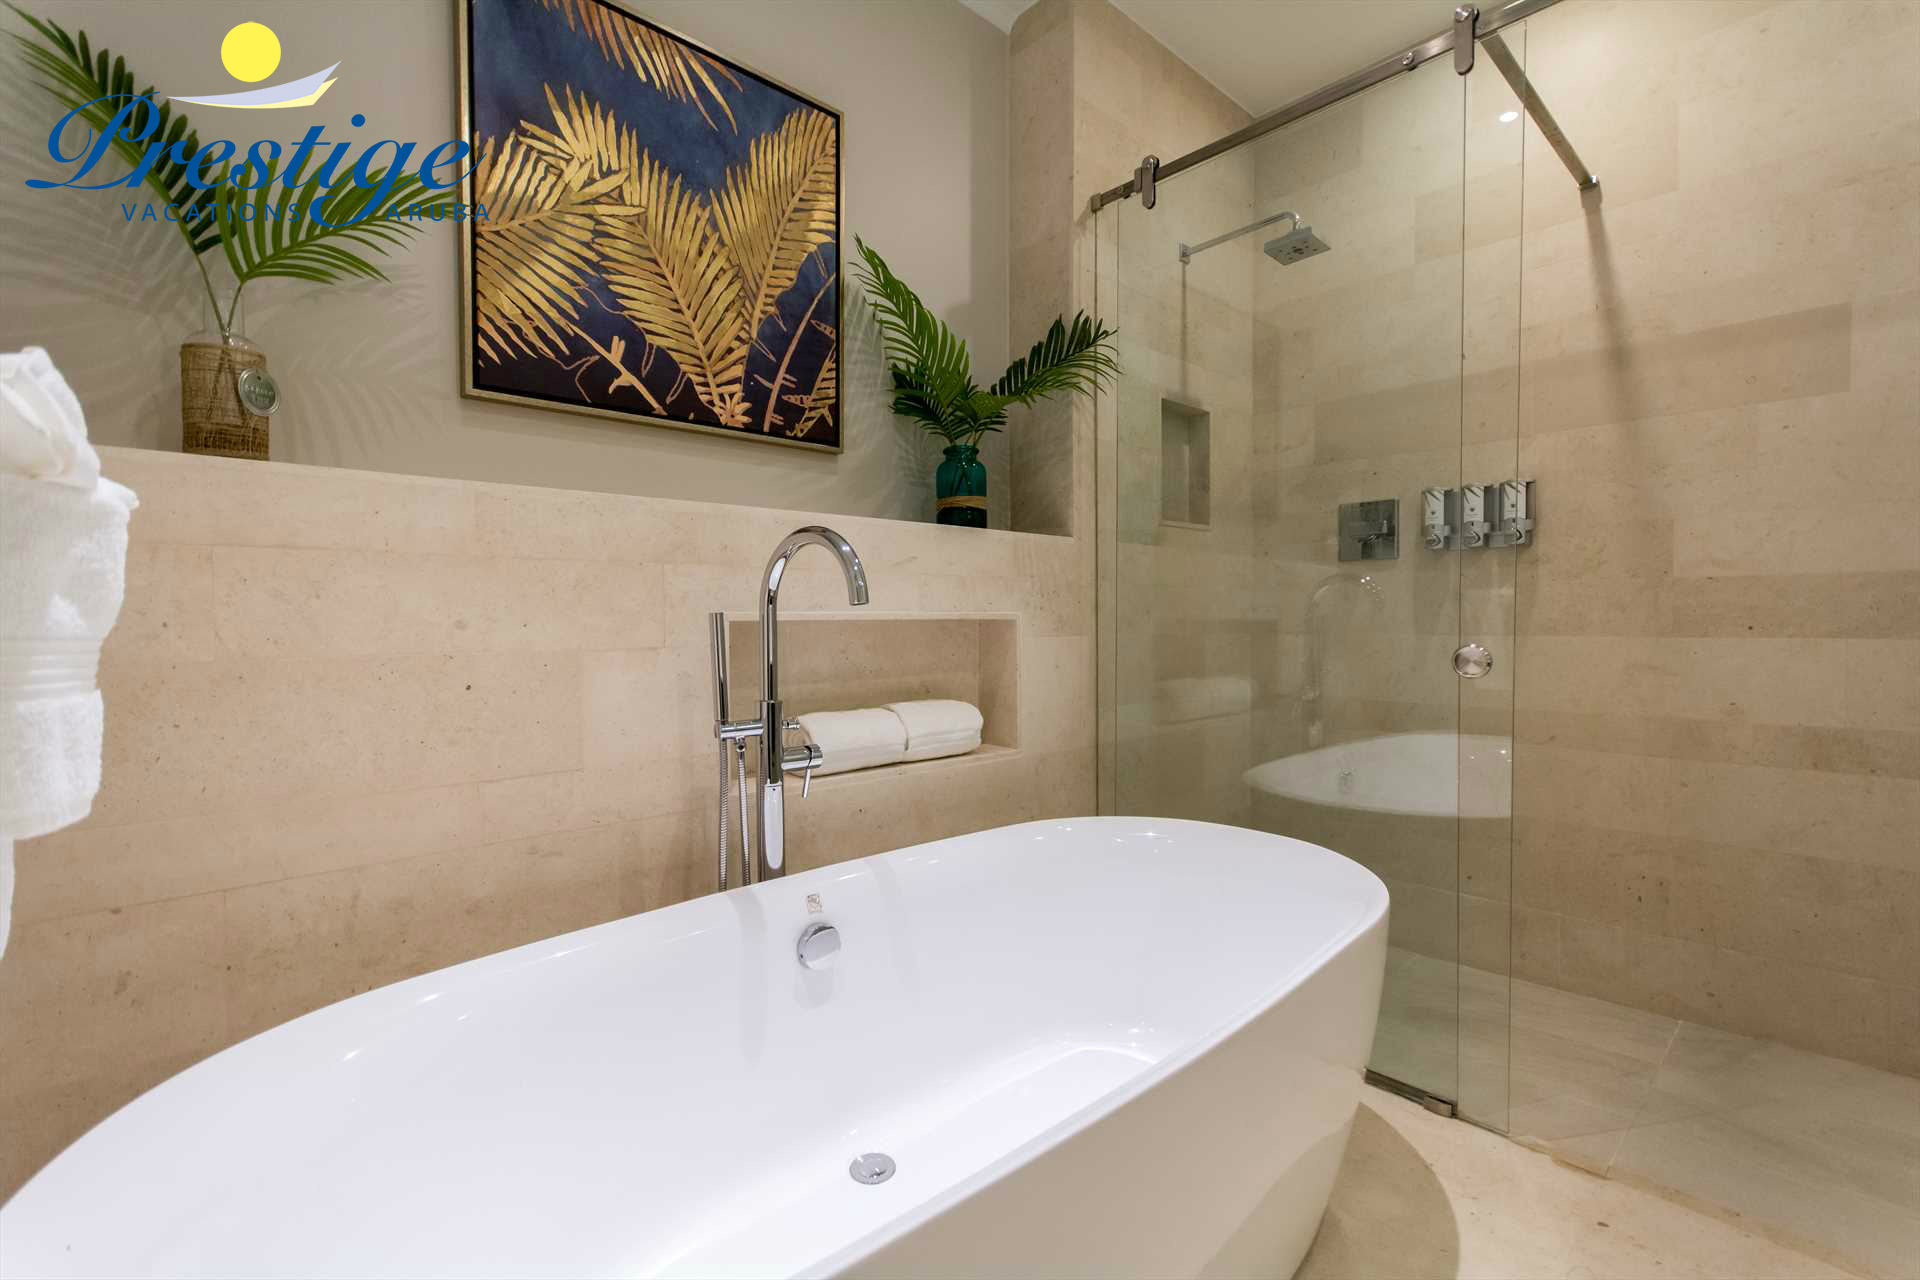 A glass-enclosed shower area plus a free-standing bathtub to soak and relax during your stay